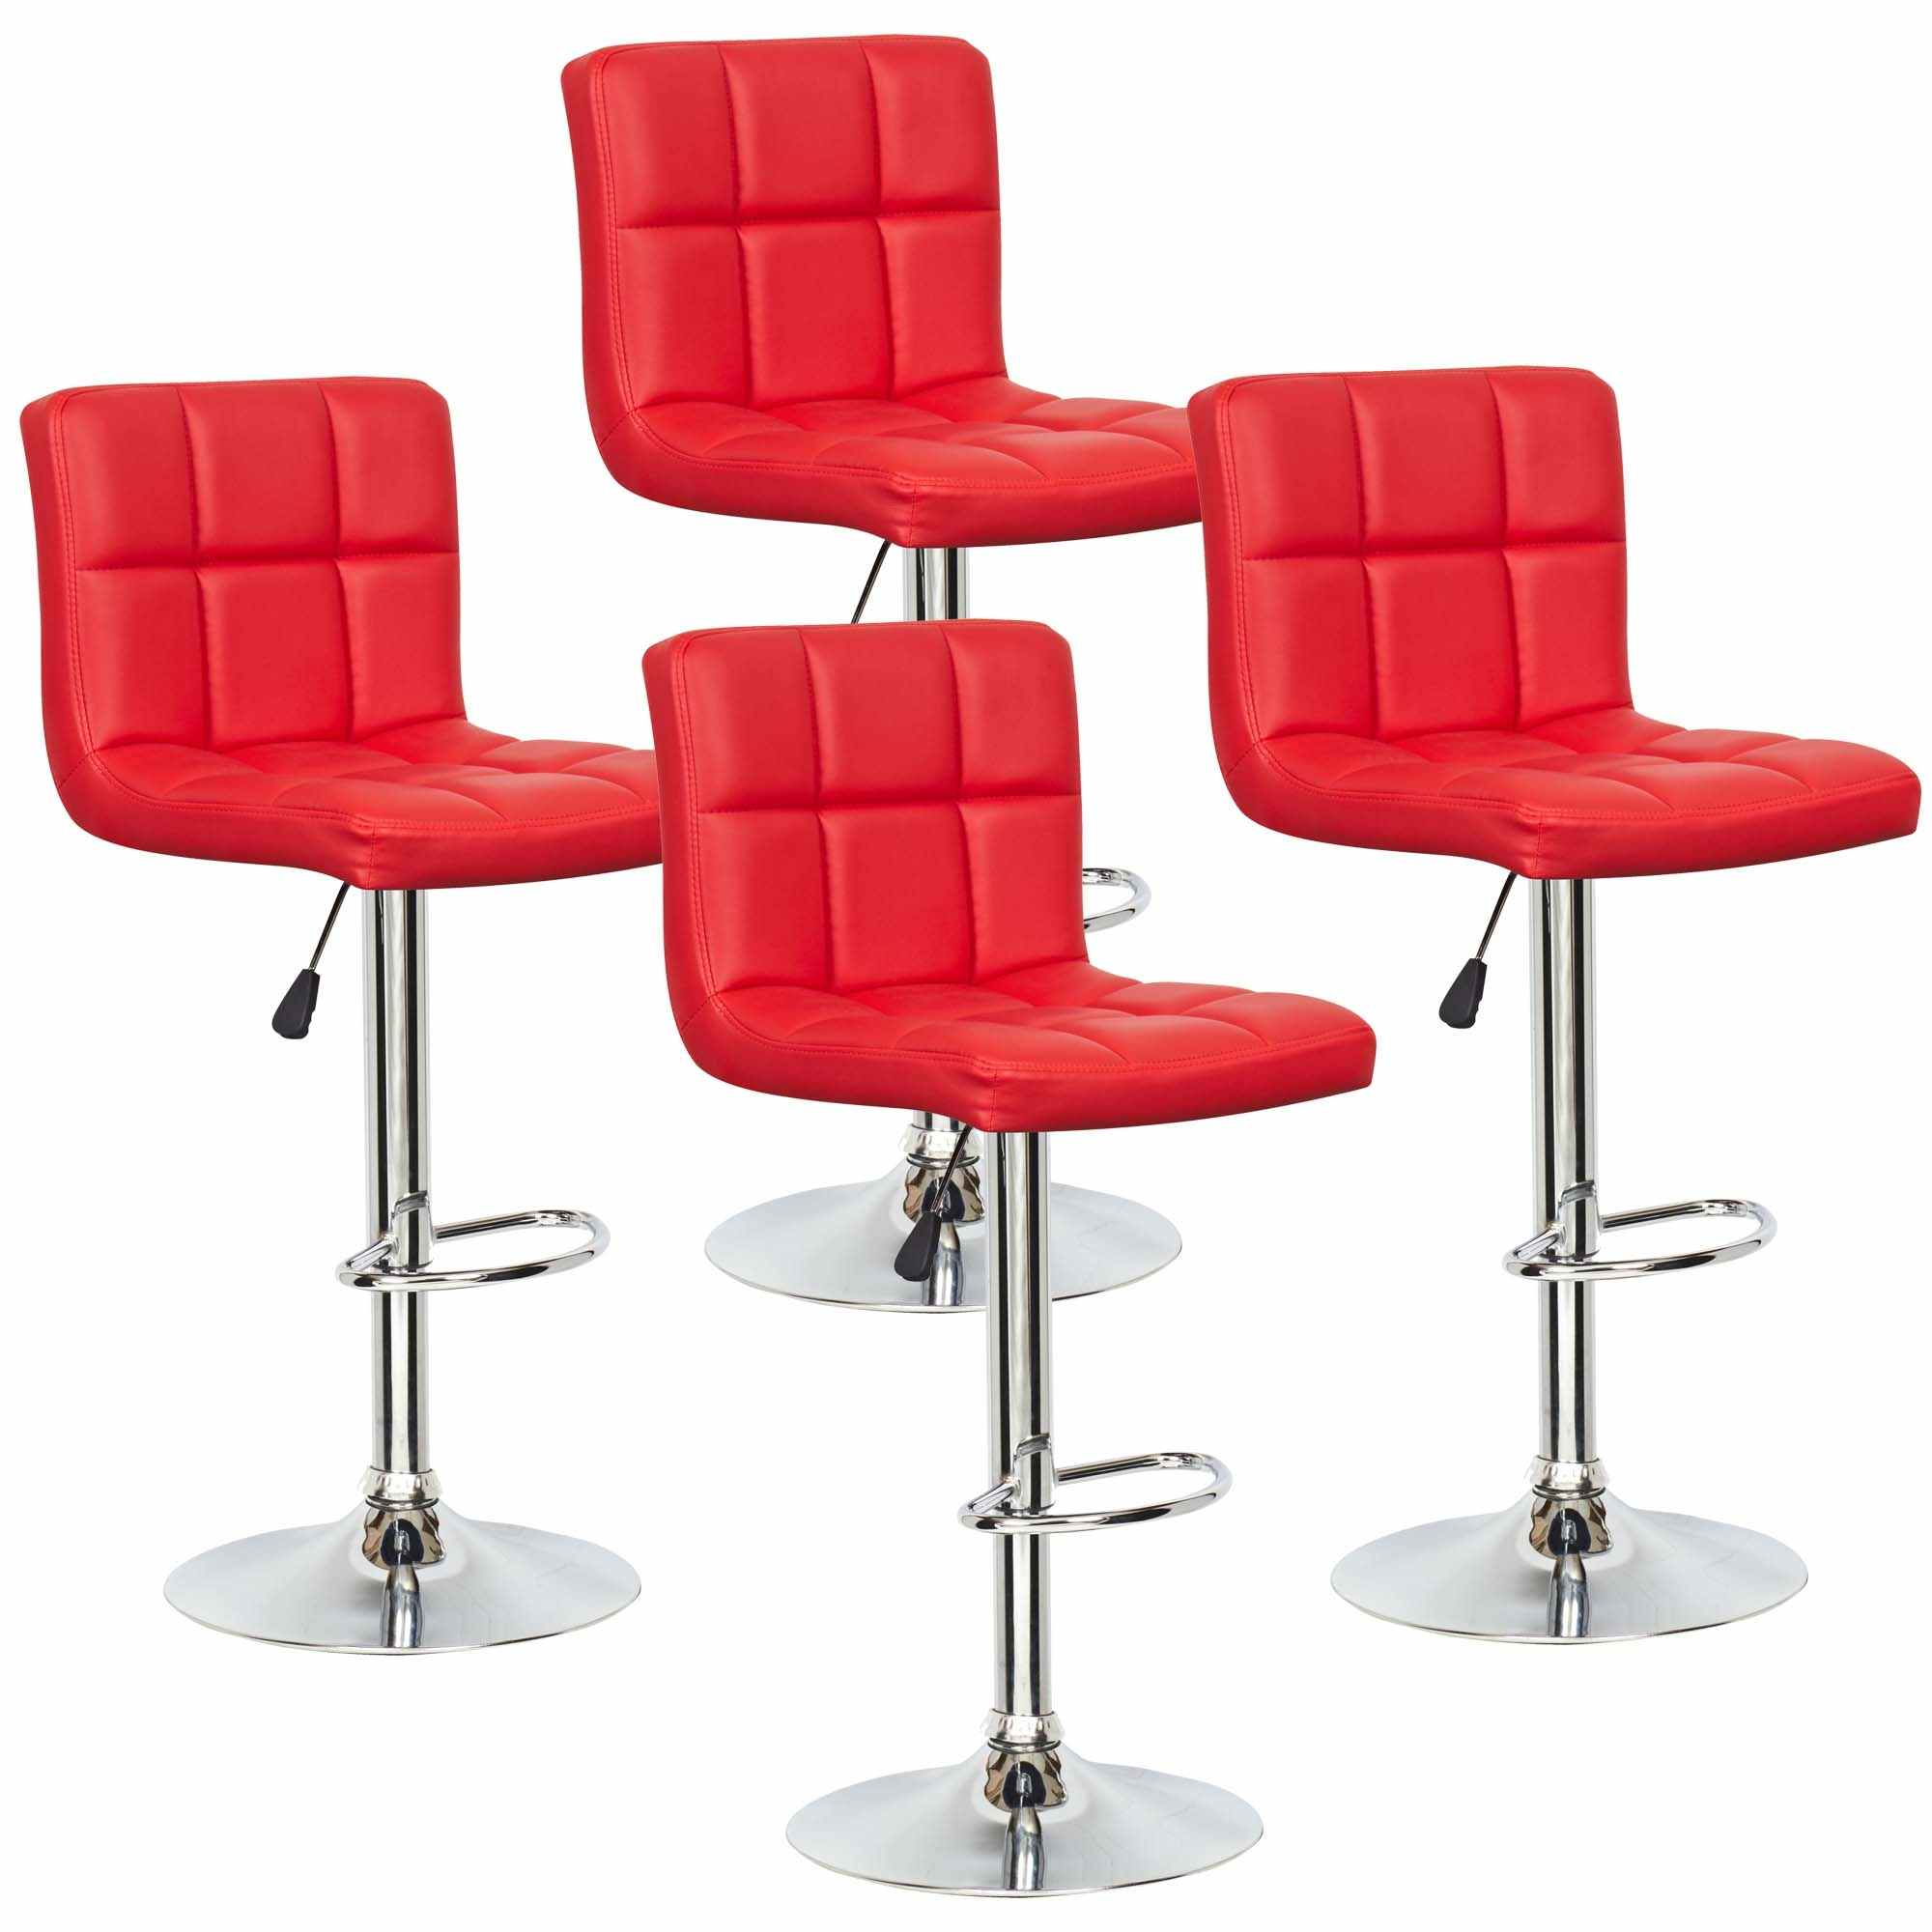 Deco in paris lot de 4 tabourets de bar rouge scalo tab rouge lot4 scalo - Tabouret de bar design rouge ...